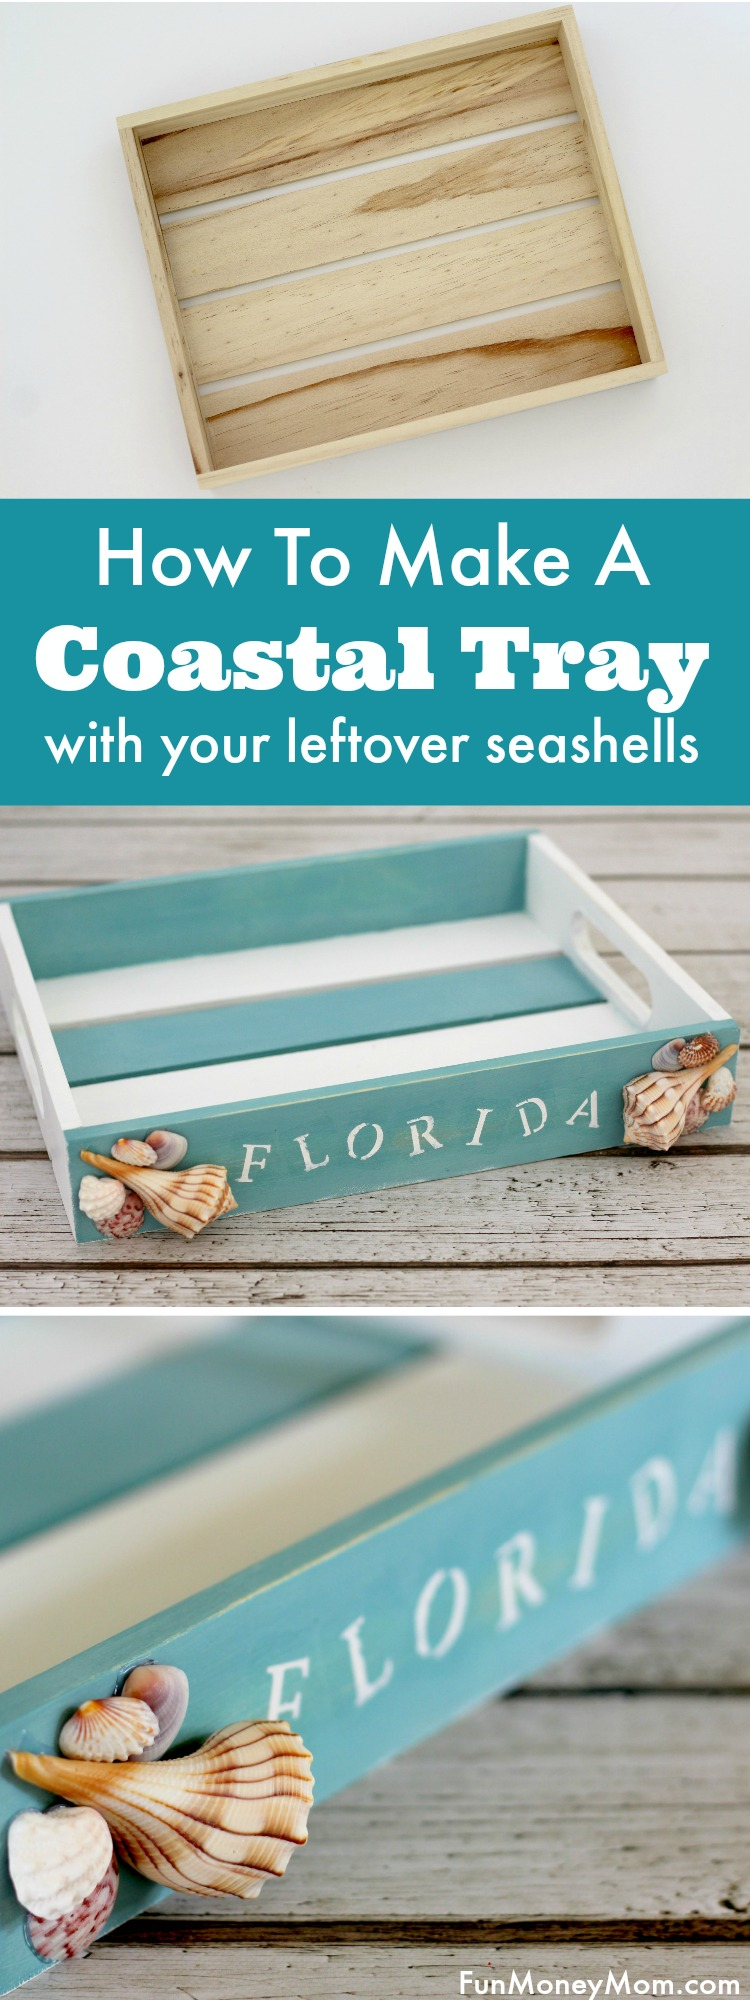 Trying to figure out what to do with all those pretty seashells you found at the beach? Why not make this cute, and useful, coastal tray!